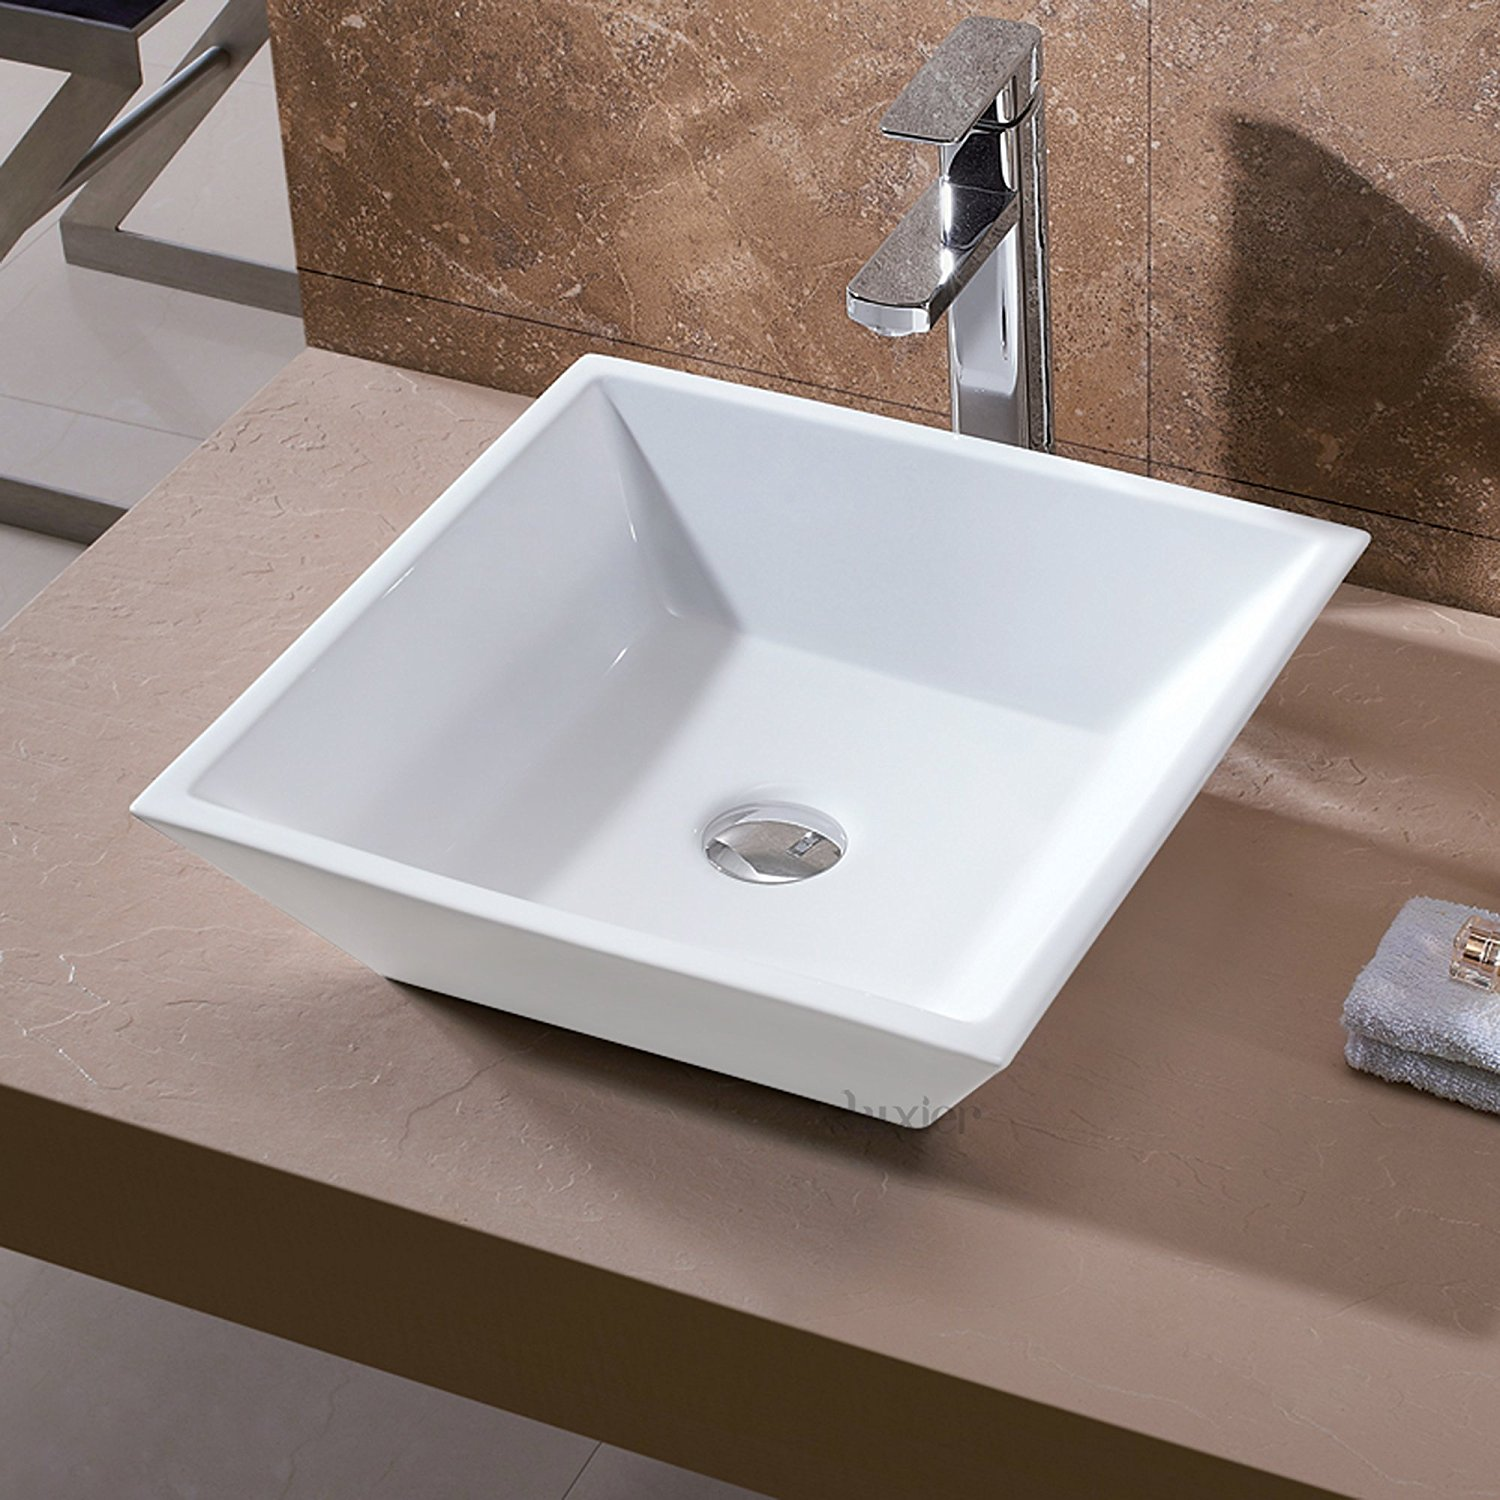 Luxier Bathroom Ceramic Vessel Sink